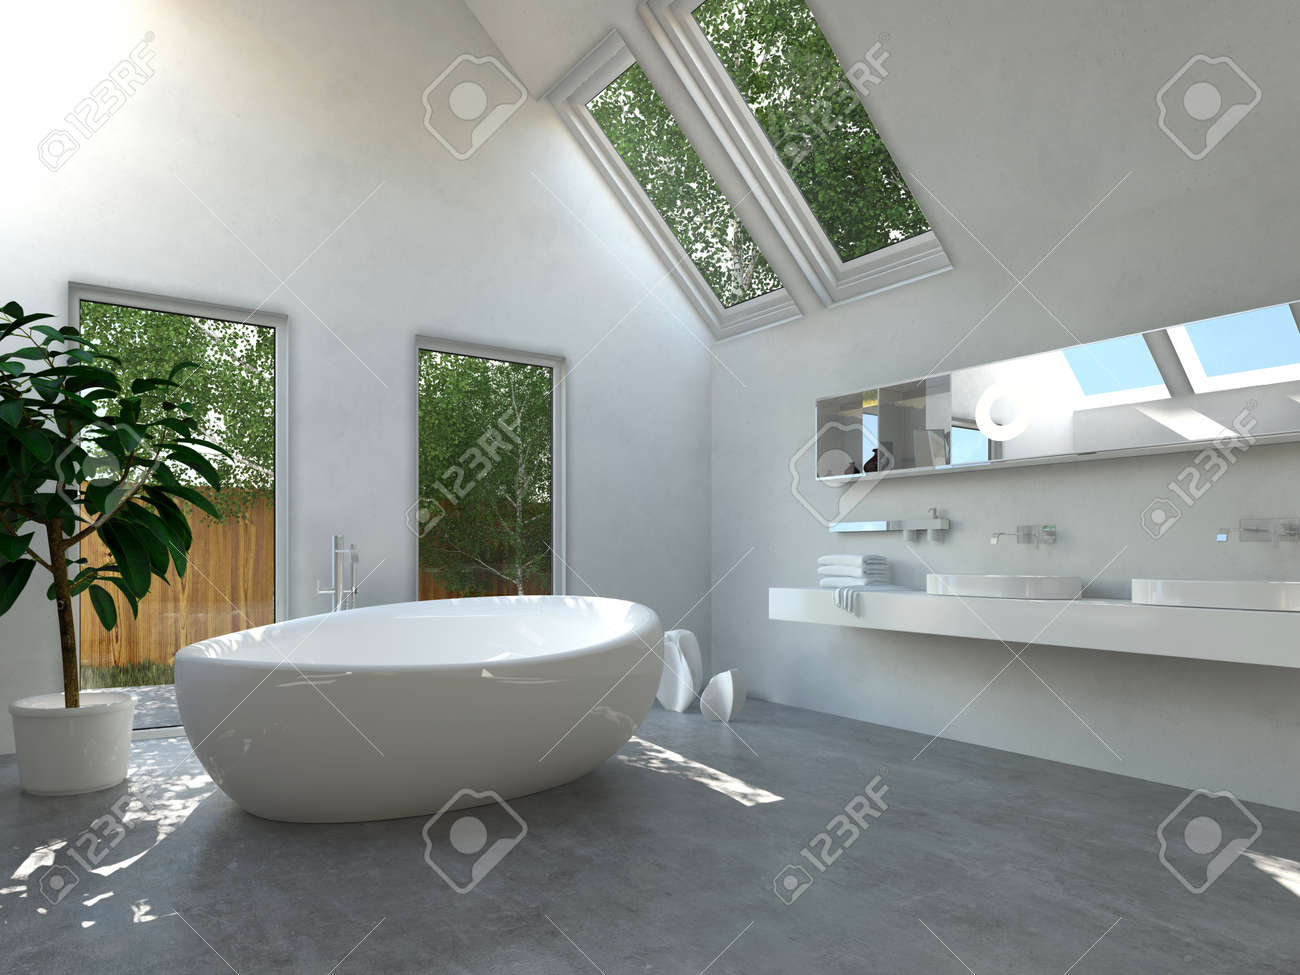 Modern Bathroom Interior With A White Freestanding Central Oval ...